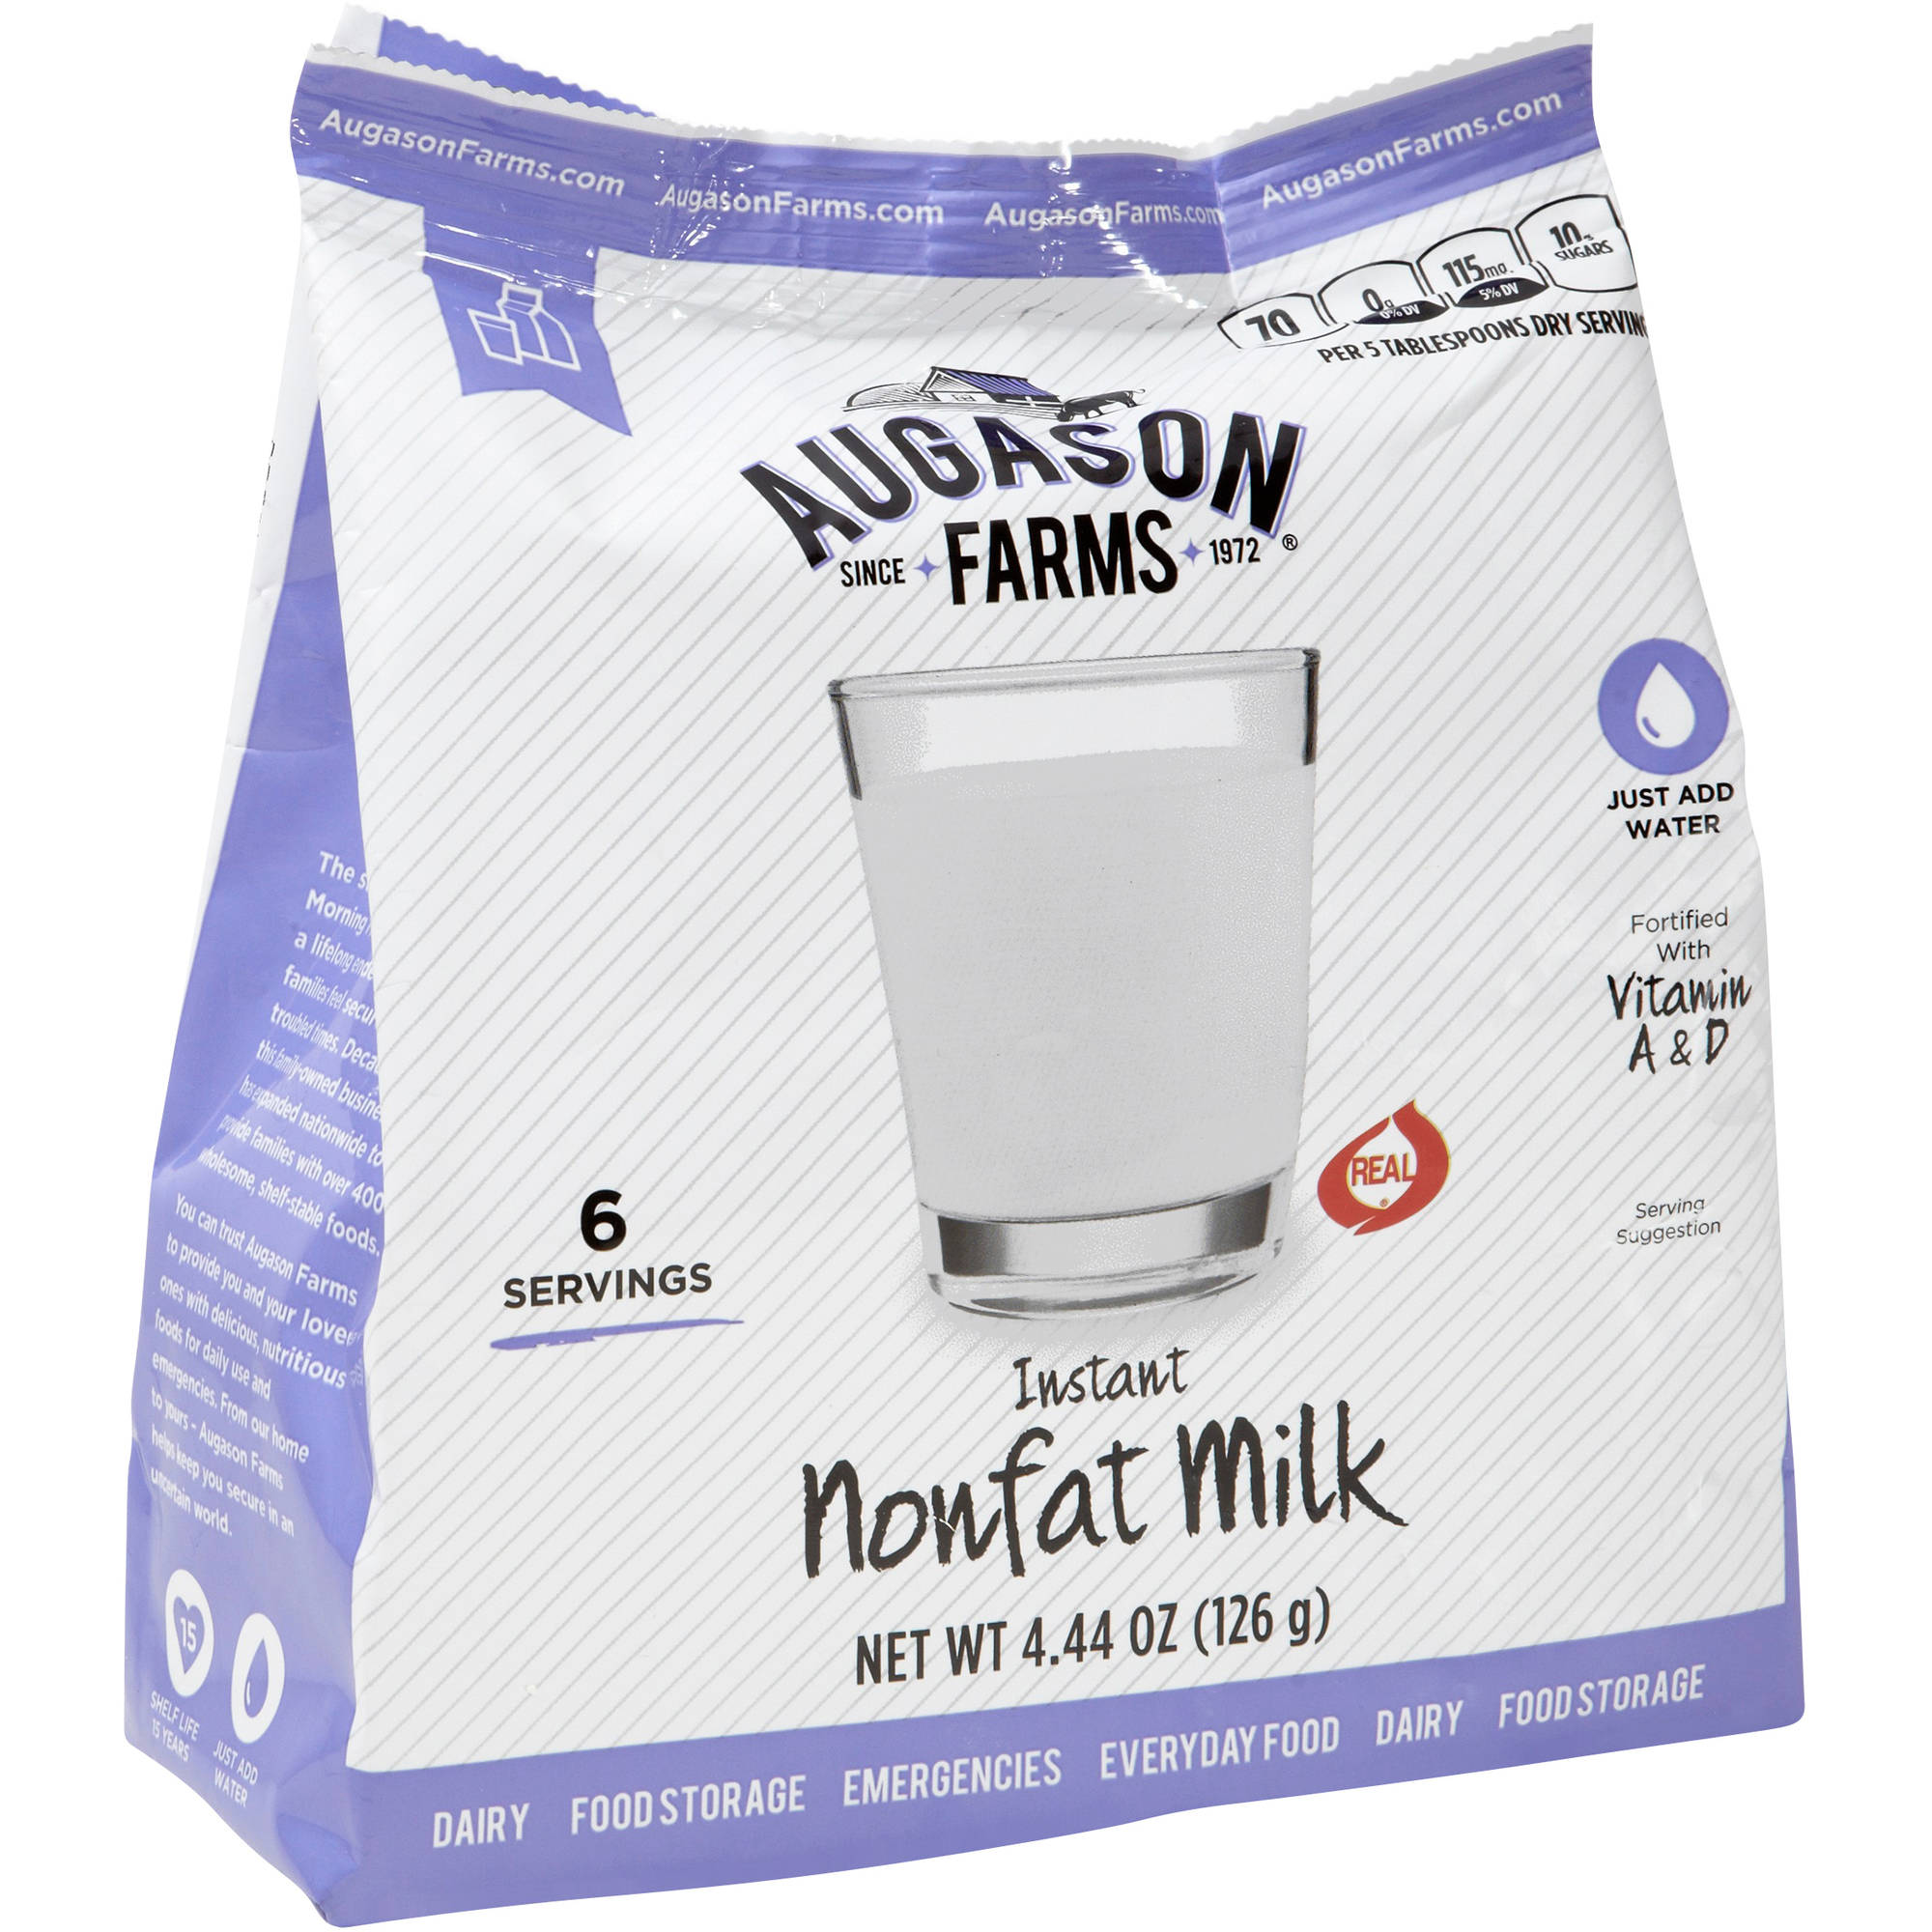 Augason Farms Instant Nonfat Milk, 4.44 oz